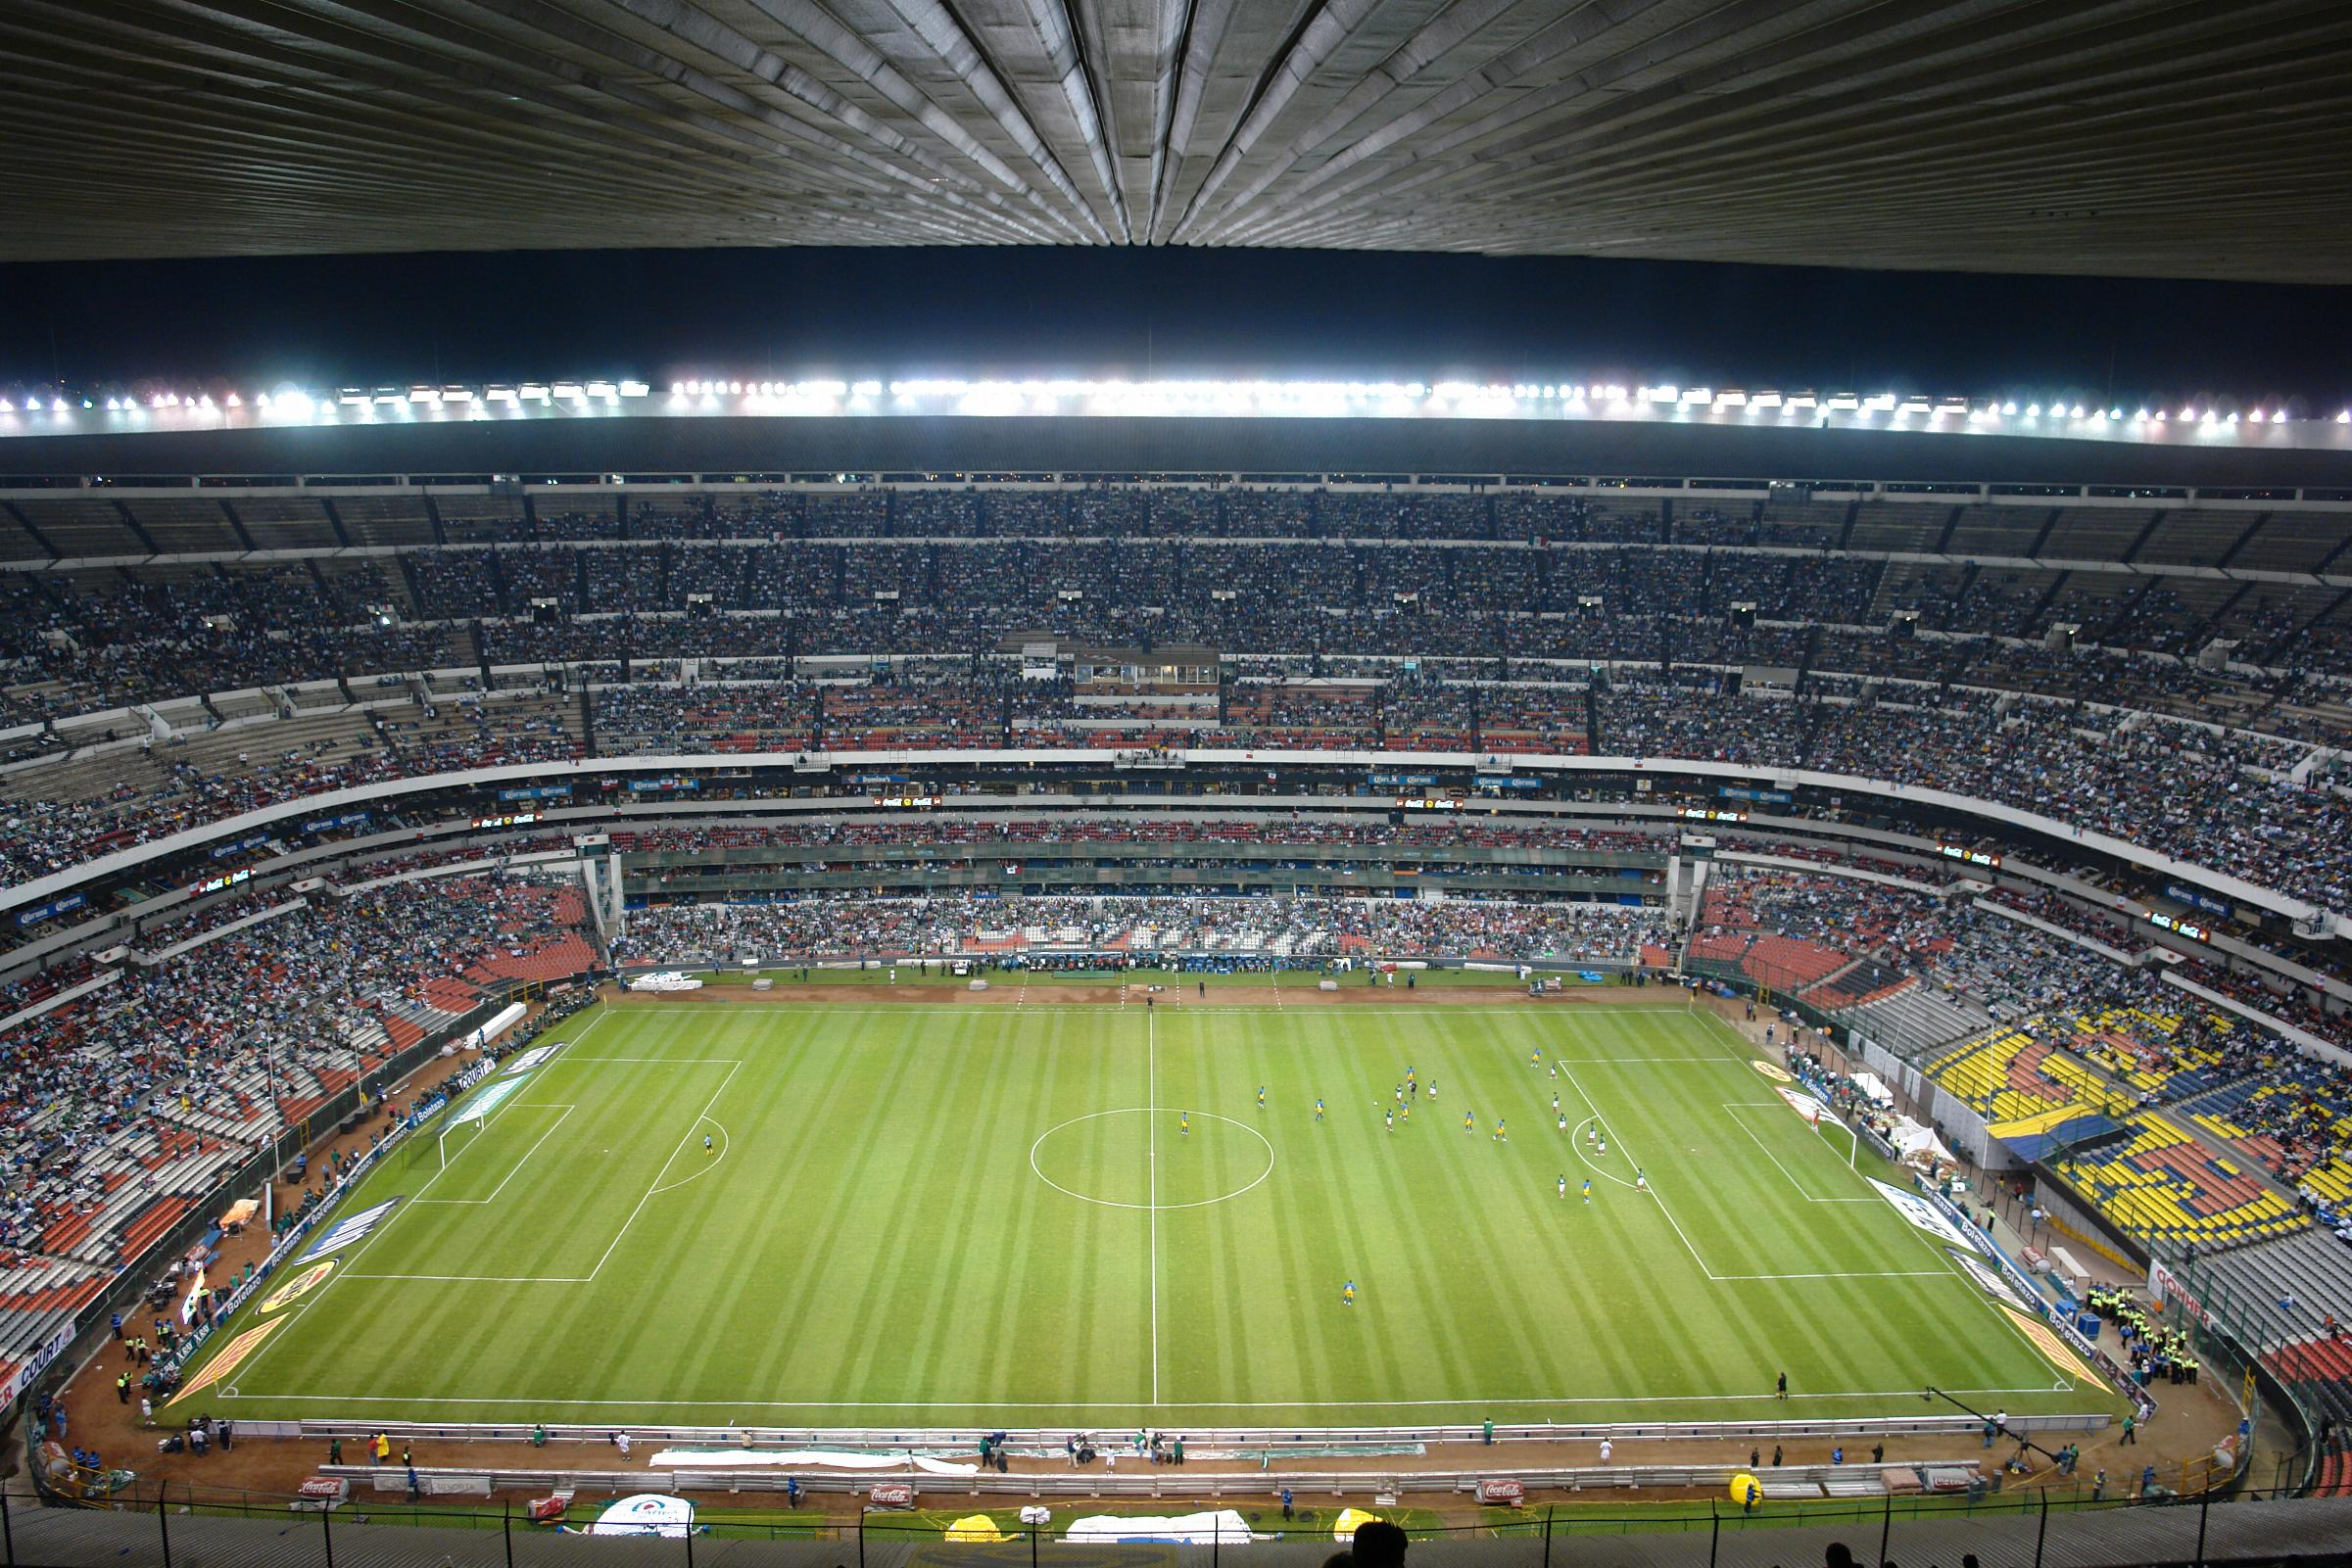 Theatre of Stadiums [licensed for non-commercial use only] / Estadio Azteca